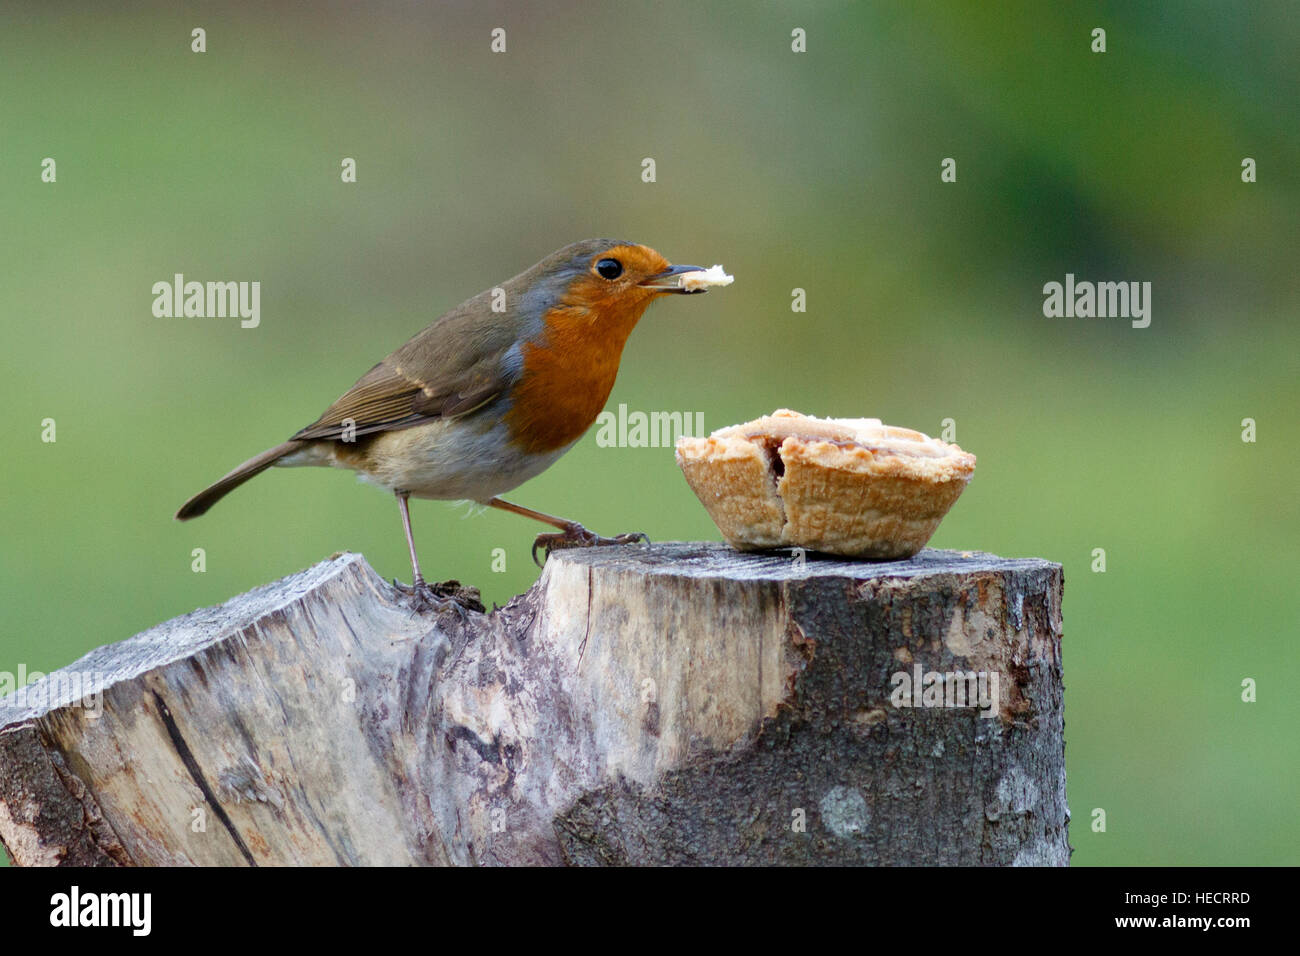 hailsham-uk-20th-december-2016-a-robin-e